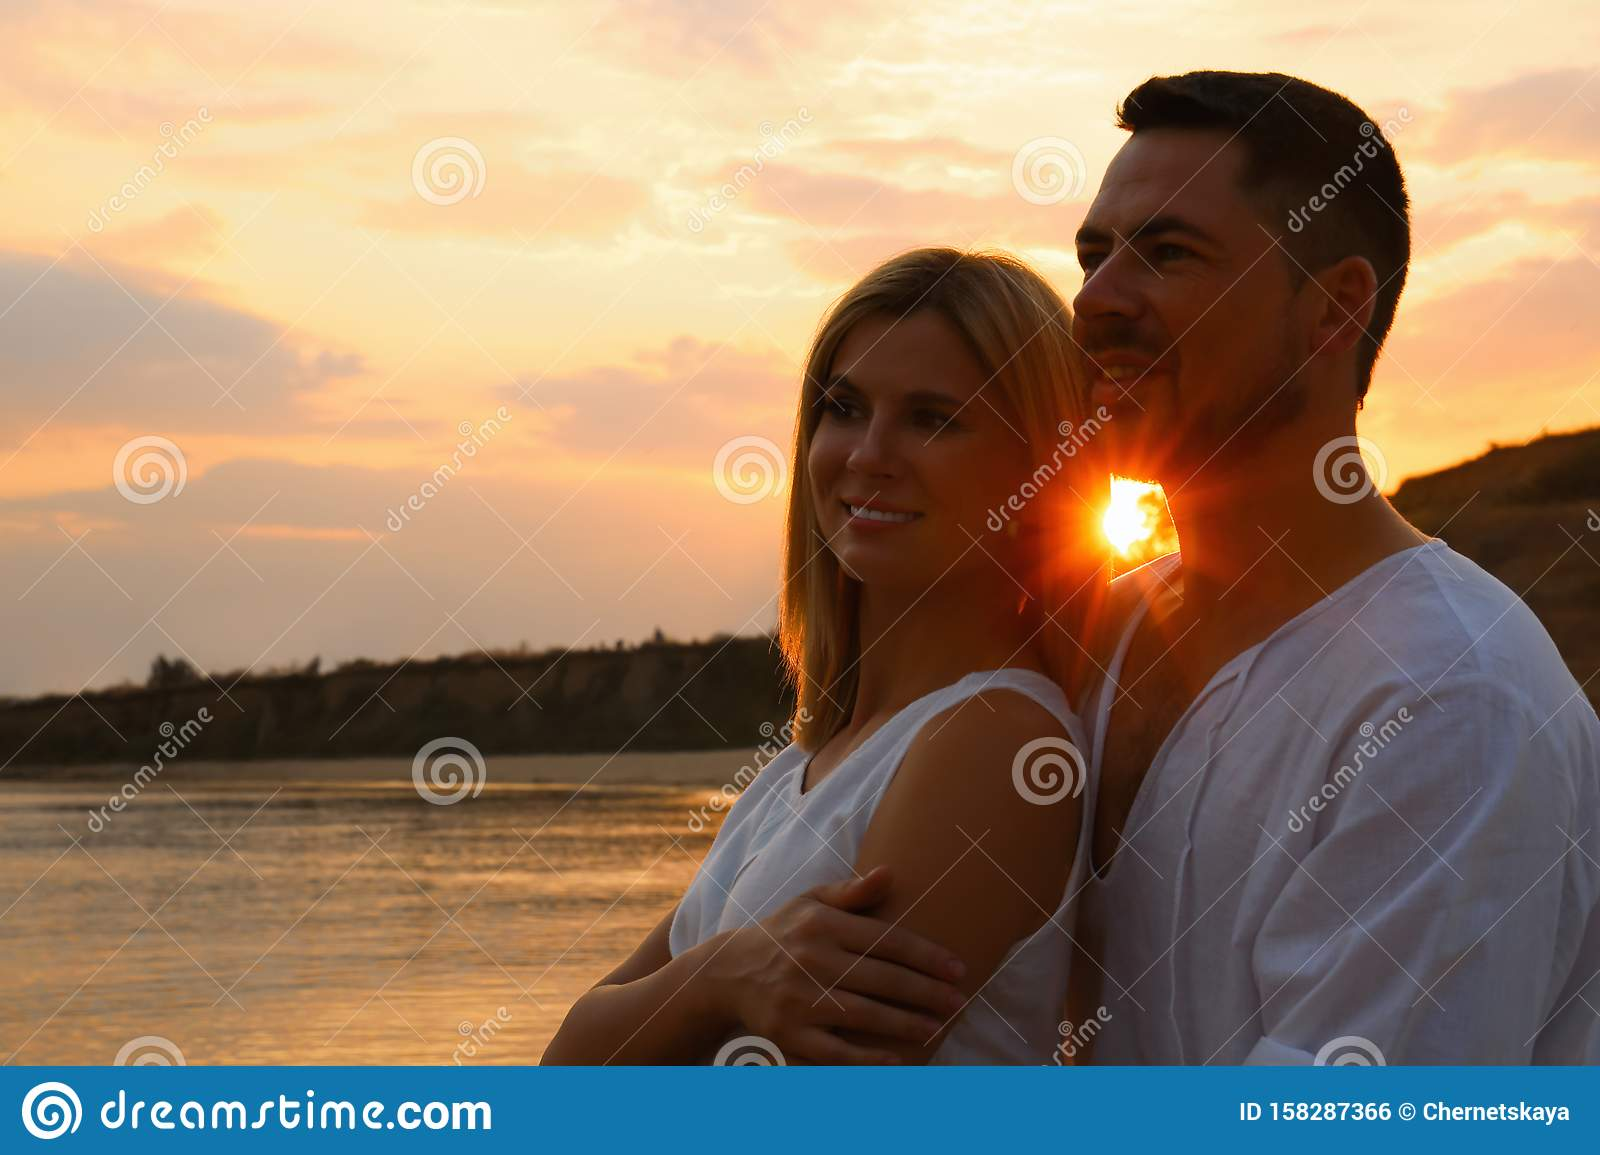 Happy romantic couple spending time together on beach at sunset